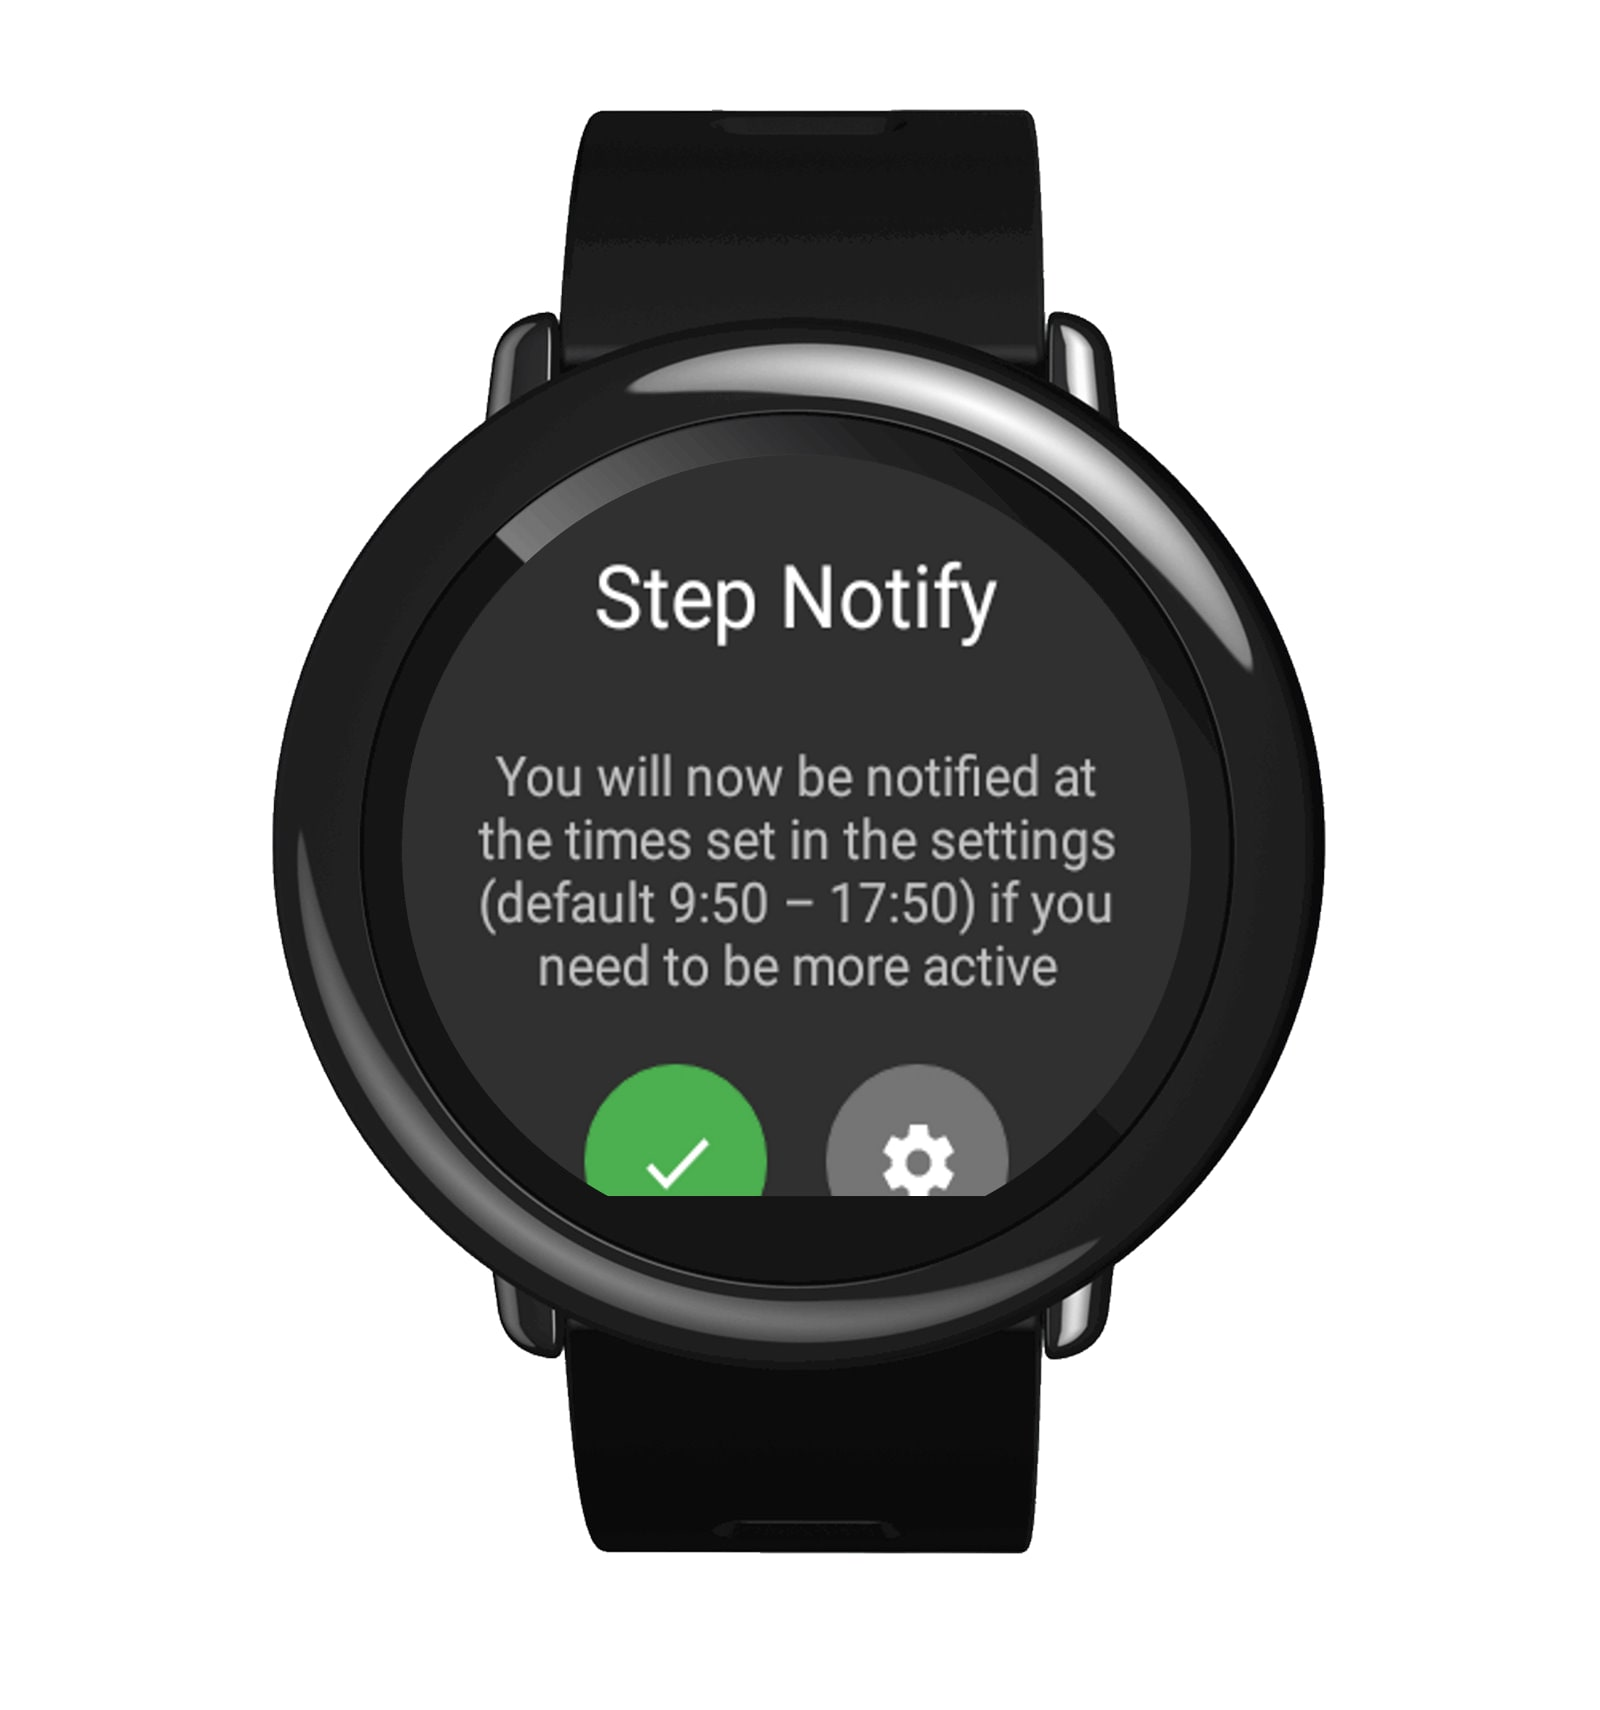 xiaomi-amazfit-pace-step-notify-1